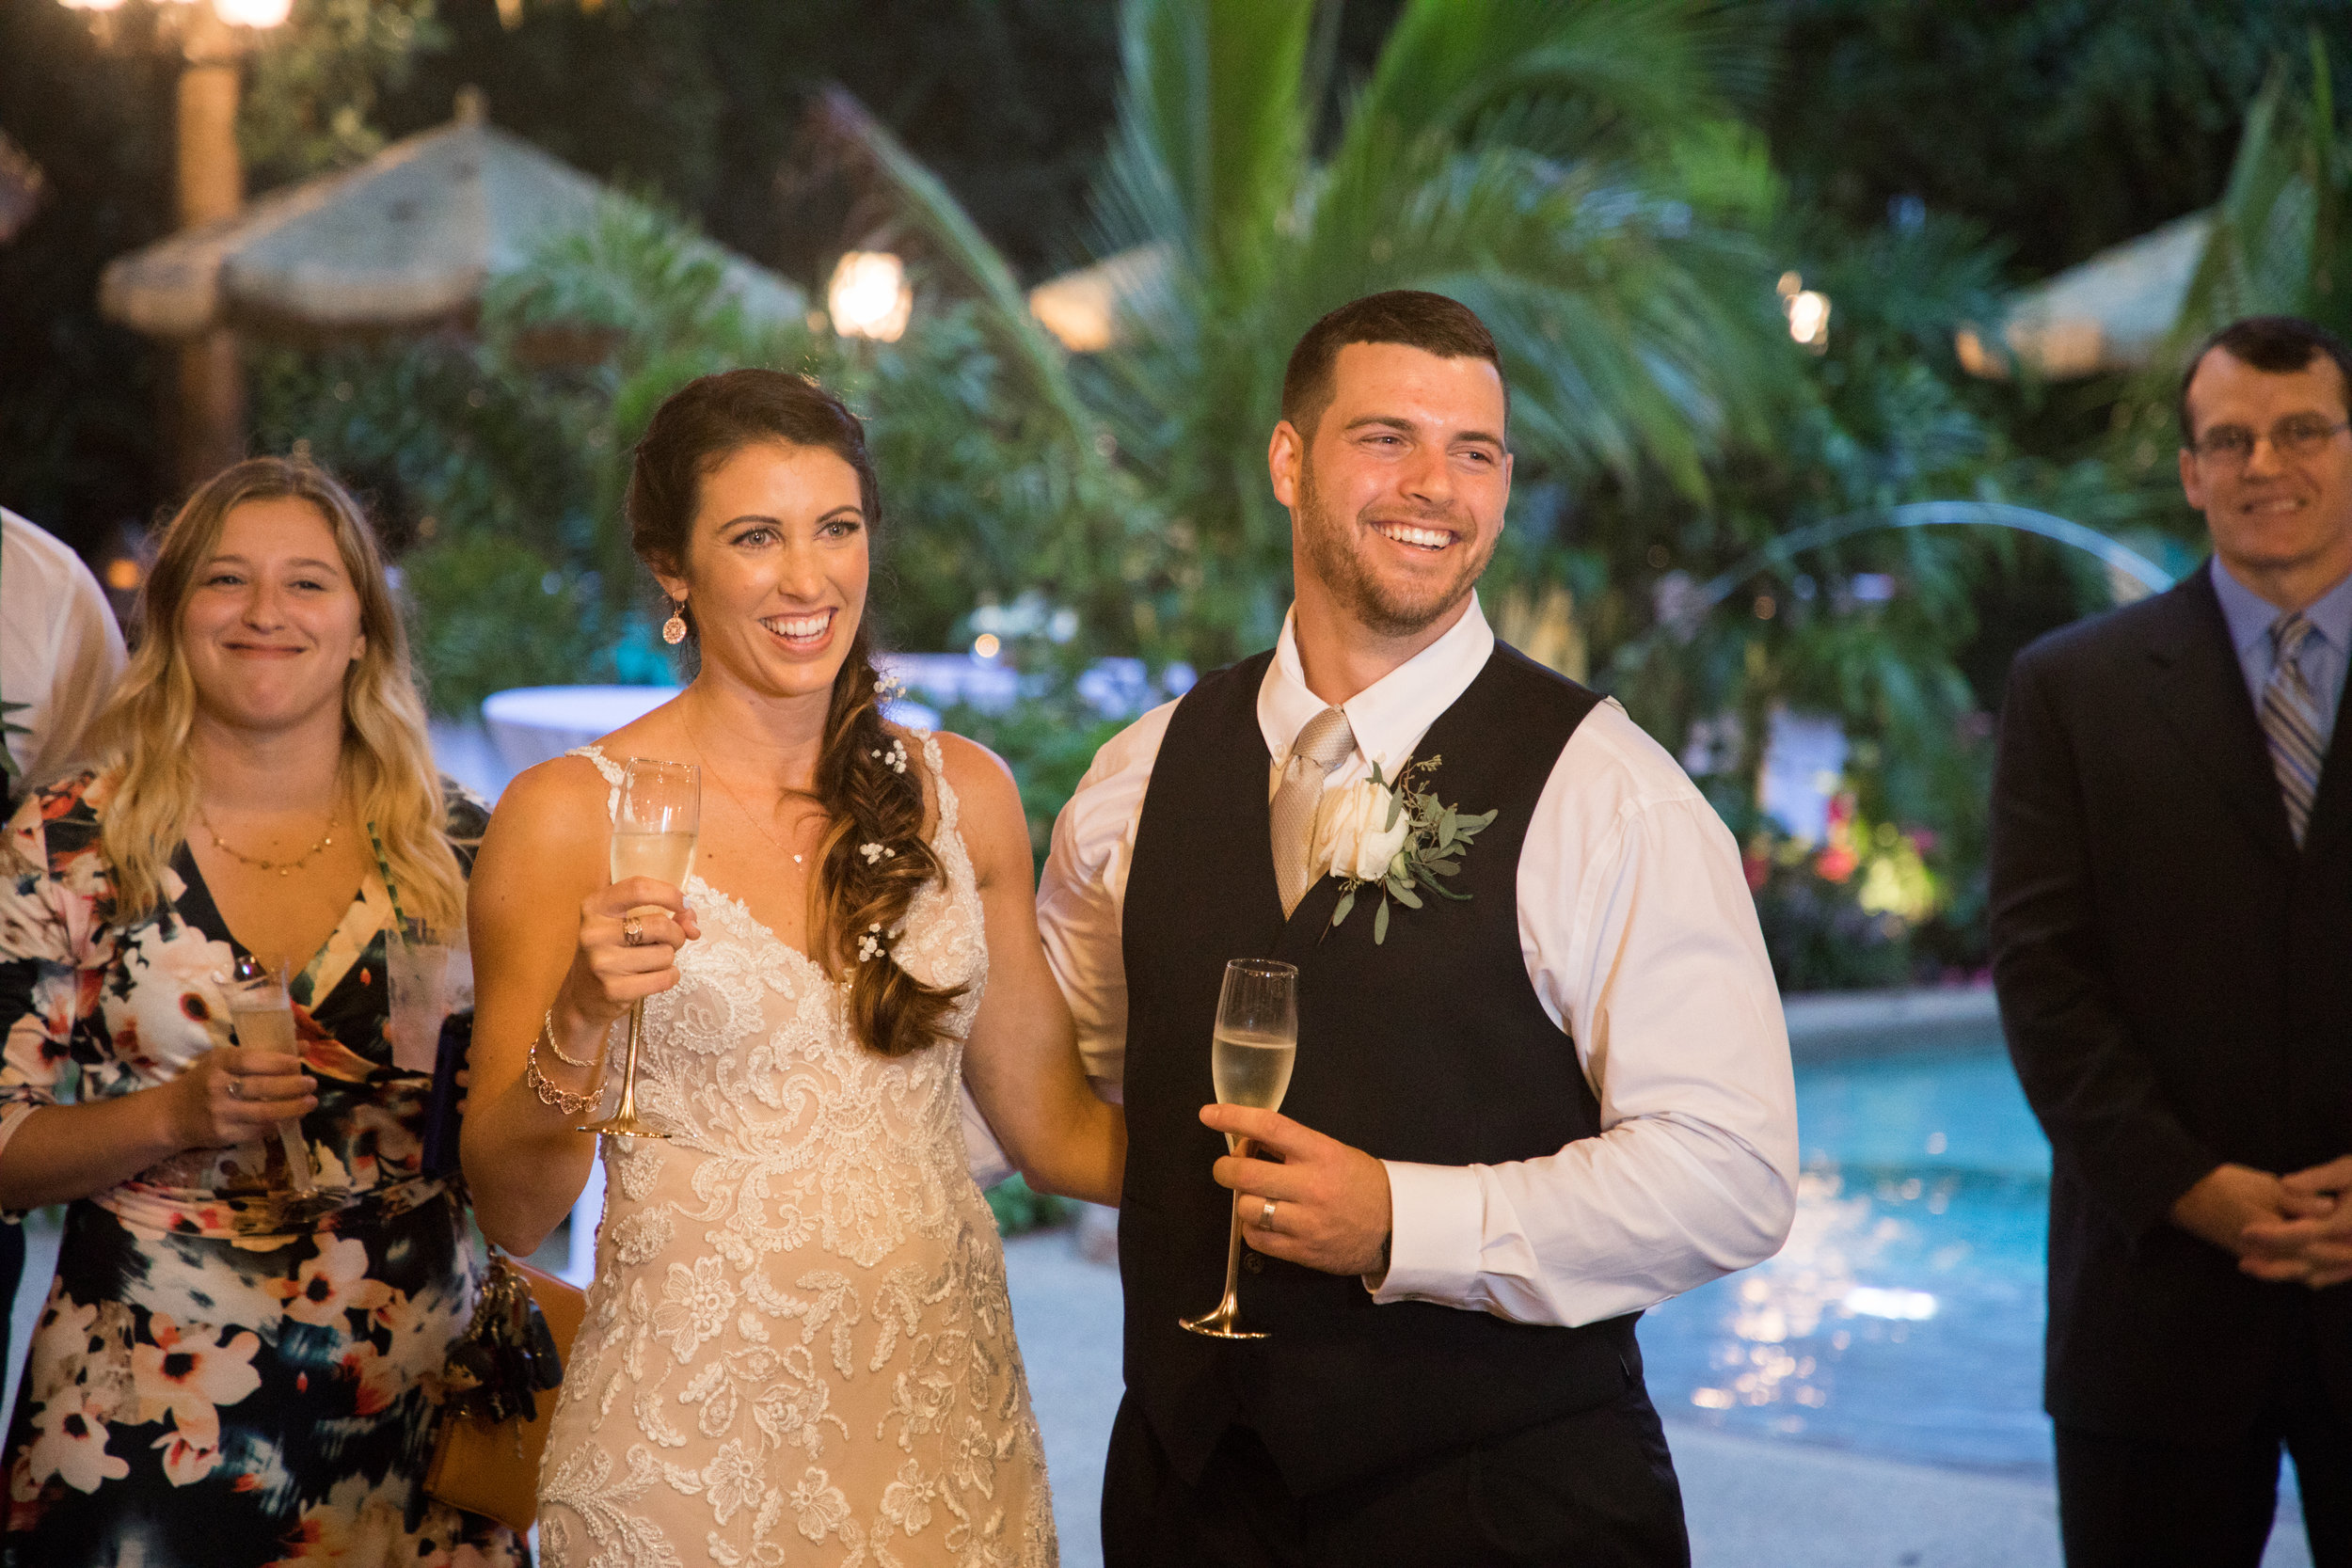 The couple laugh in response to a comment during the best man's toast.